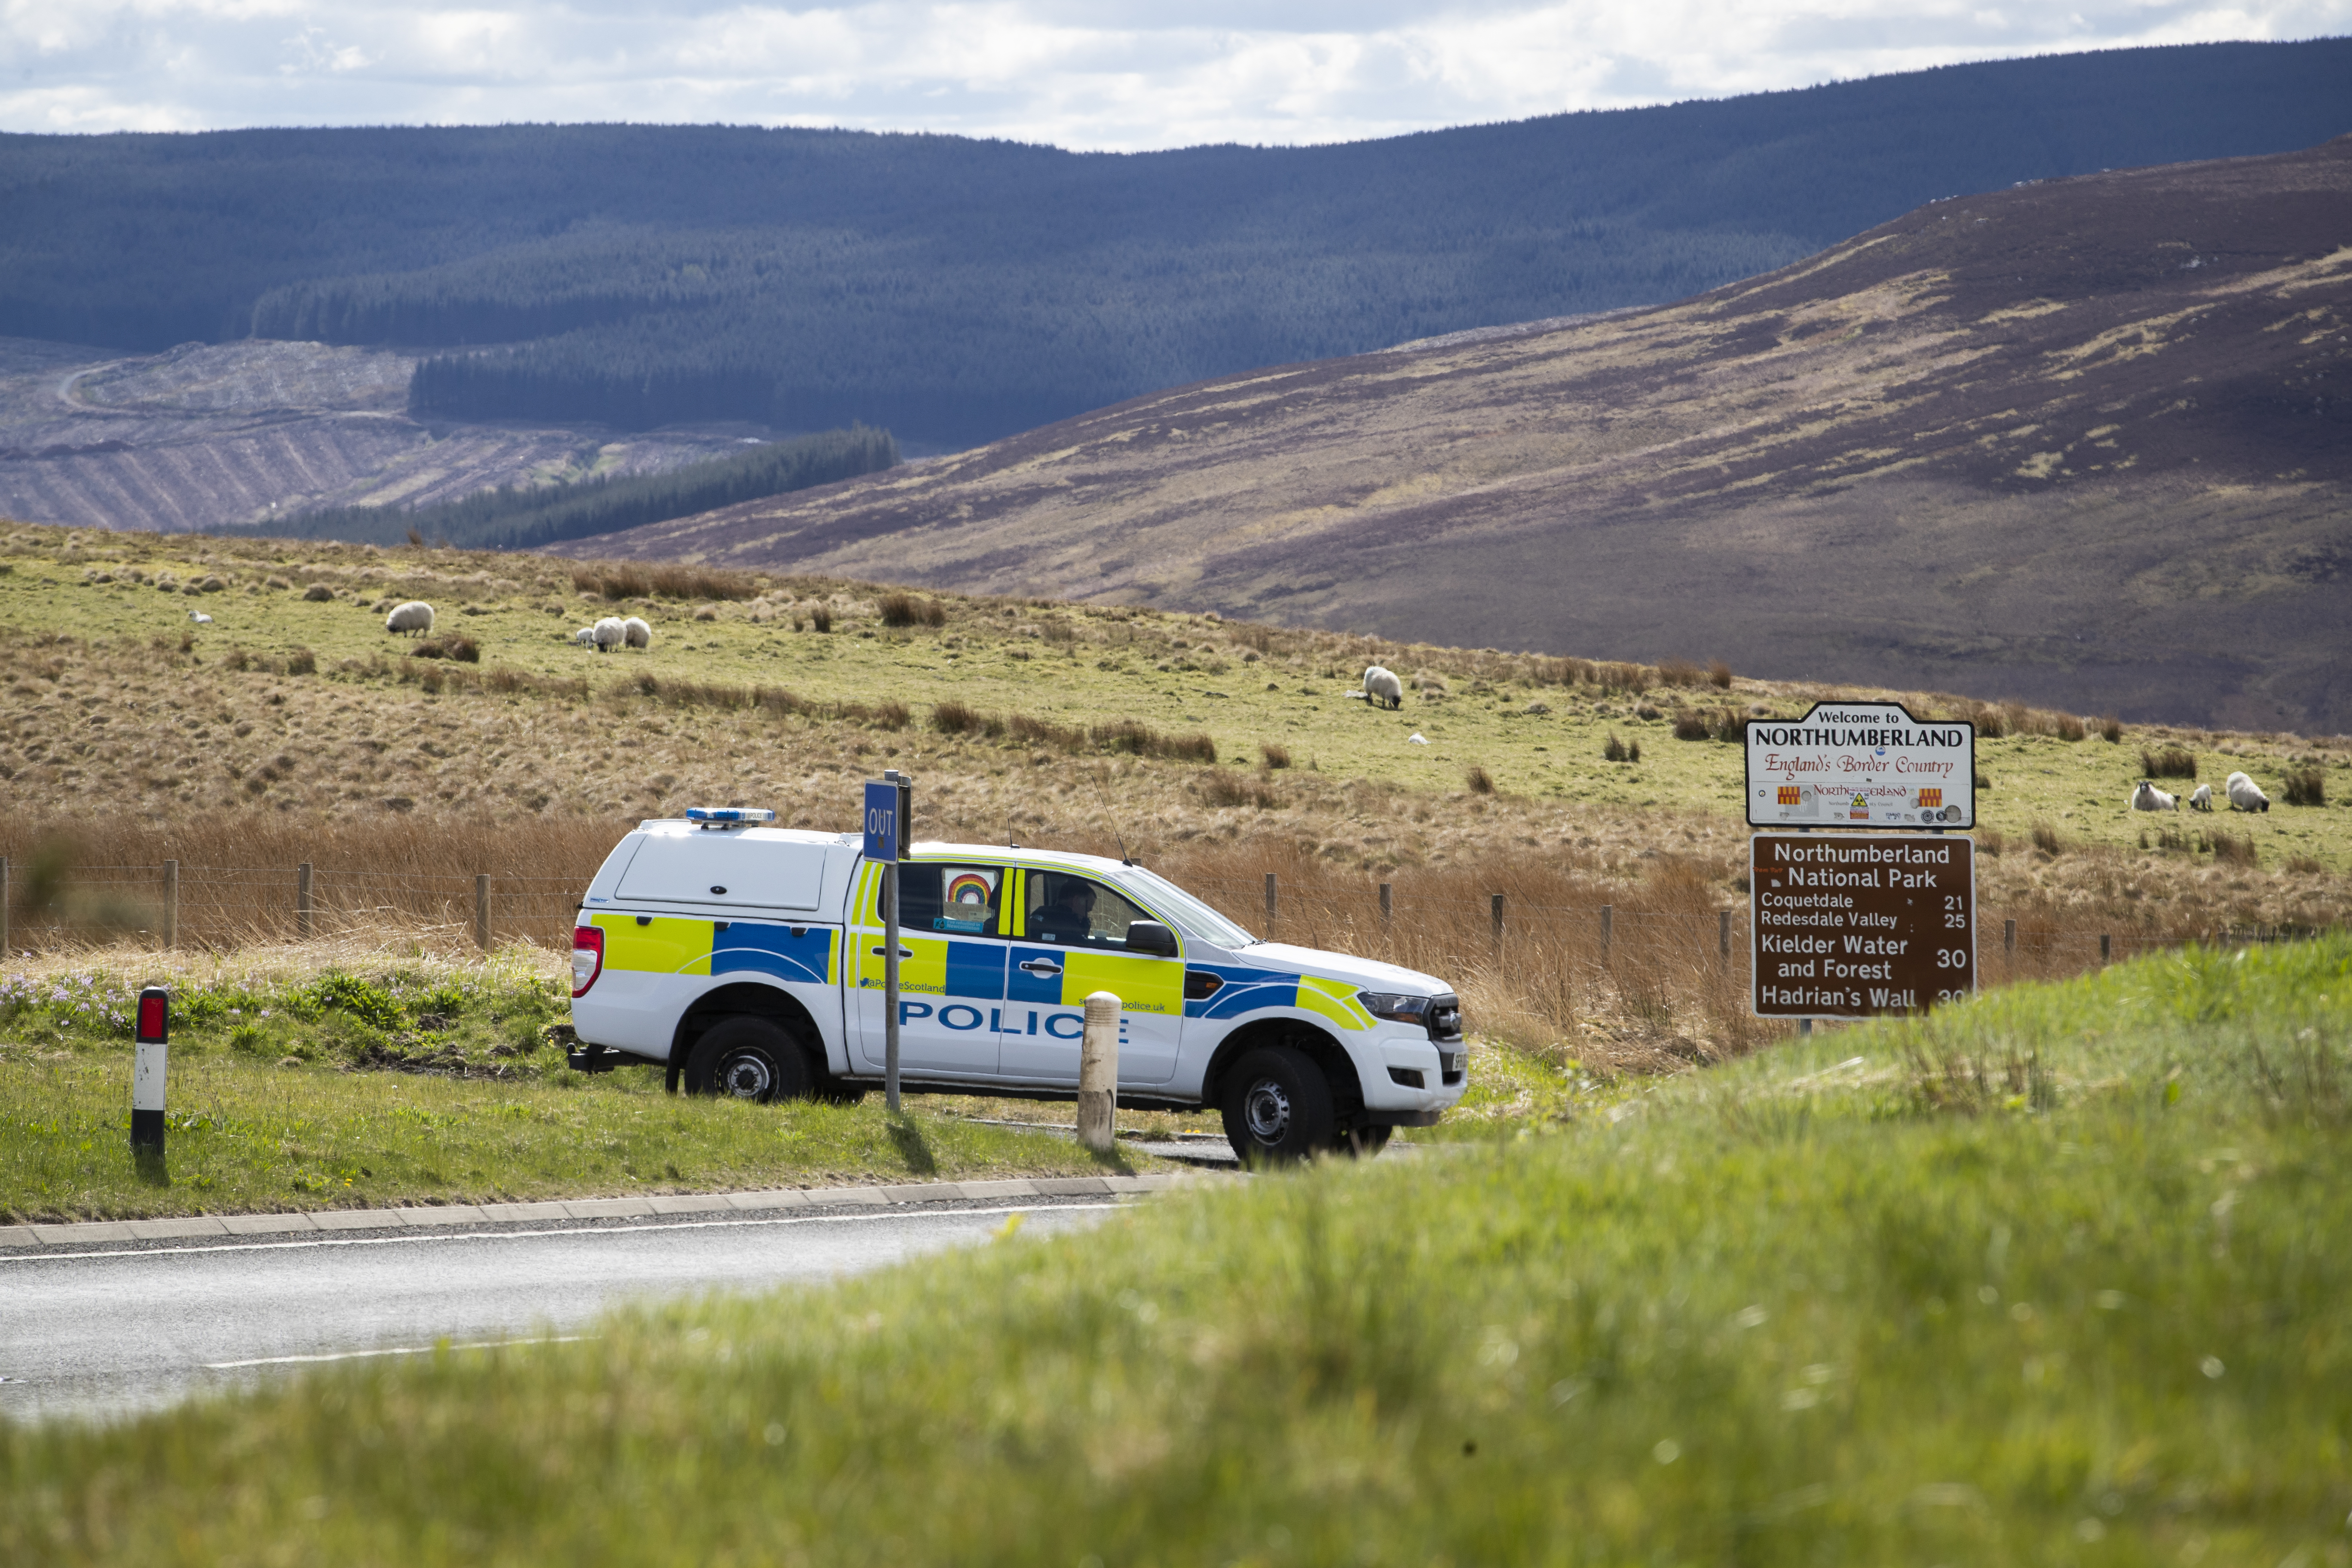 Police patrol the Scotland-England border on the A68 near Jedburgh in the Scottish Borders as the UK continues in lockdown to help curb the spread of the coronavirus.